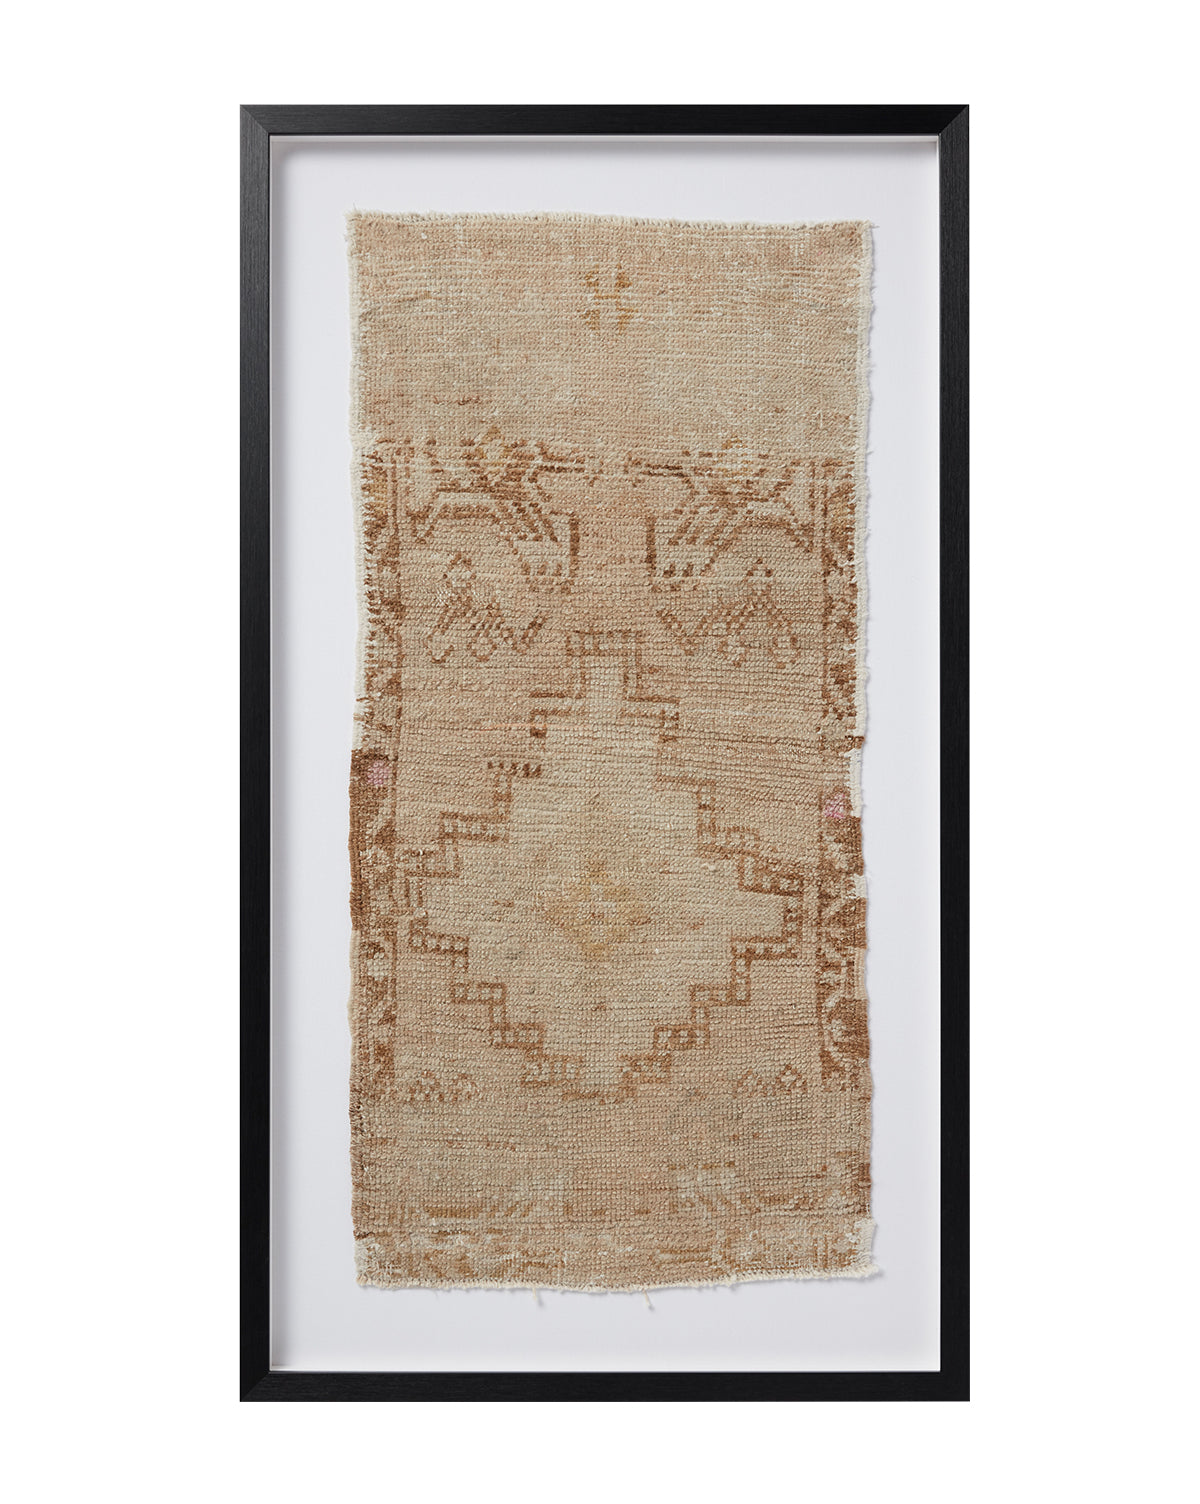 Vintage Framed Rug No. 6